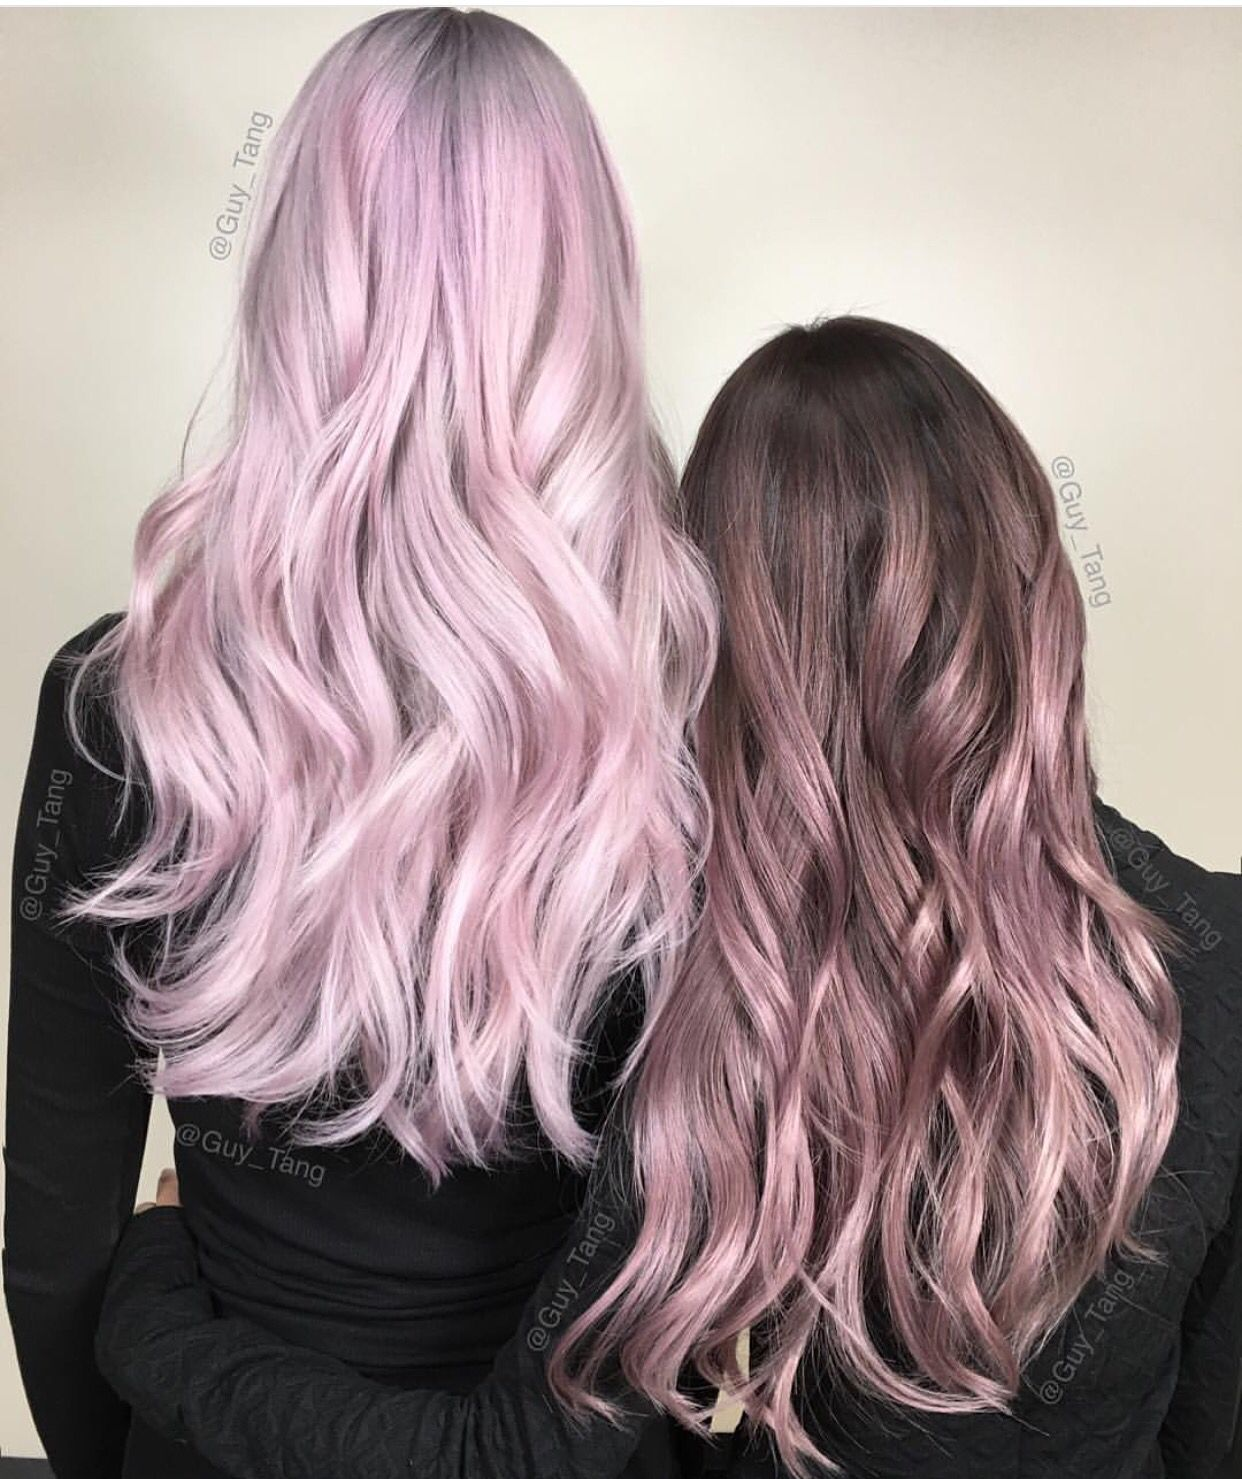 Metallic Pink Hair Color And Metallic Rose Hair Color Designs By Guy